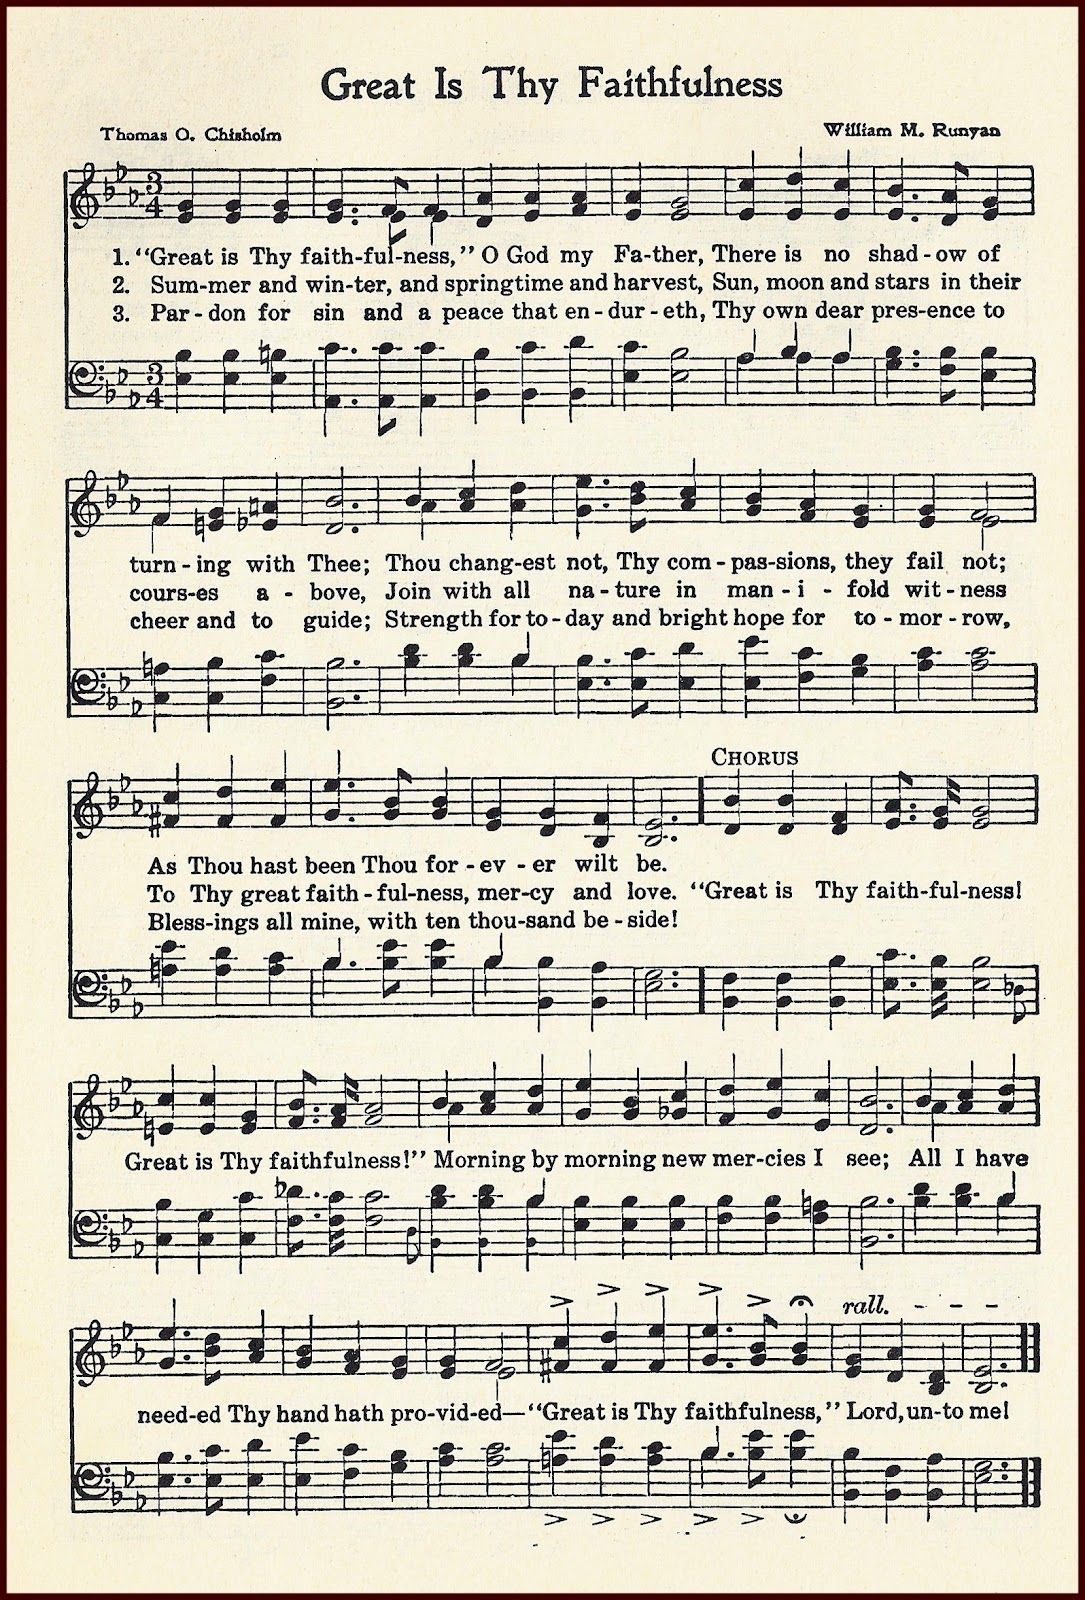 Great Is Thy Faithfulness: Inspiration from the Beloved Hymn